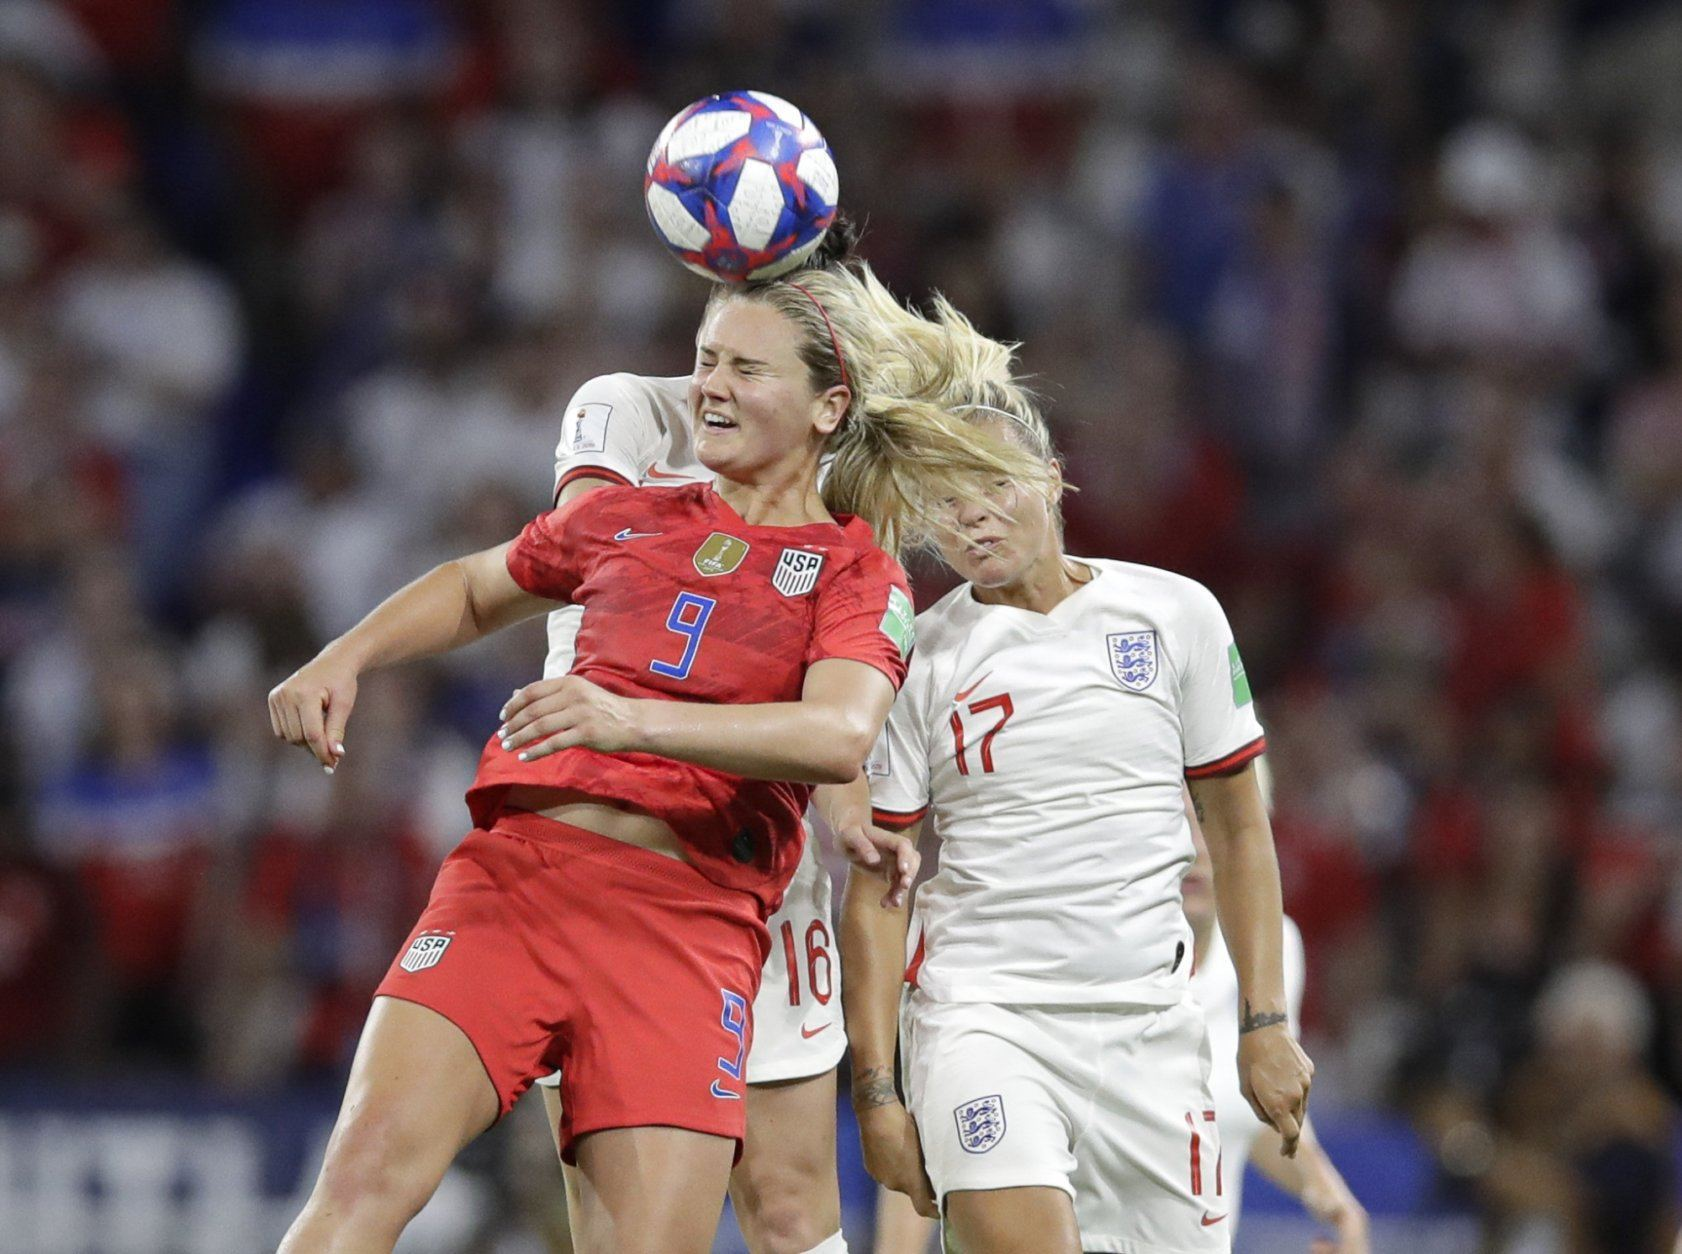 United States' Lindsey Horan, left, jumps for a header with England's Rachel Daly during the Women's World Cup semifinal soccer match between England and the United States, at the Stade de Lyon, outside Lyon, France, Tuesday, July 2, 2019. (AP Photo/Alessandra Tarantino)